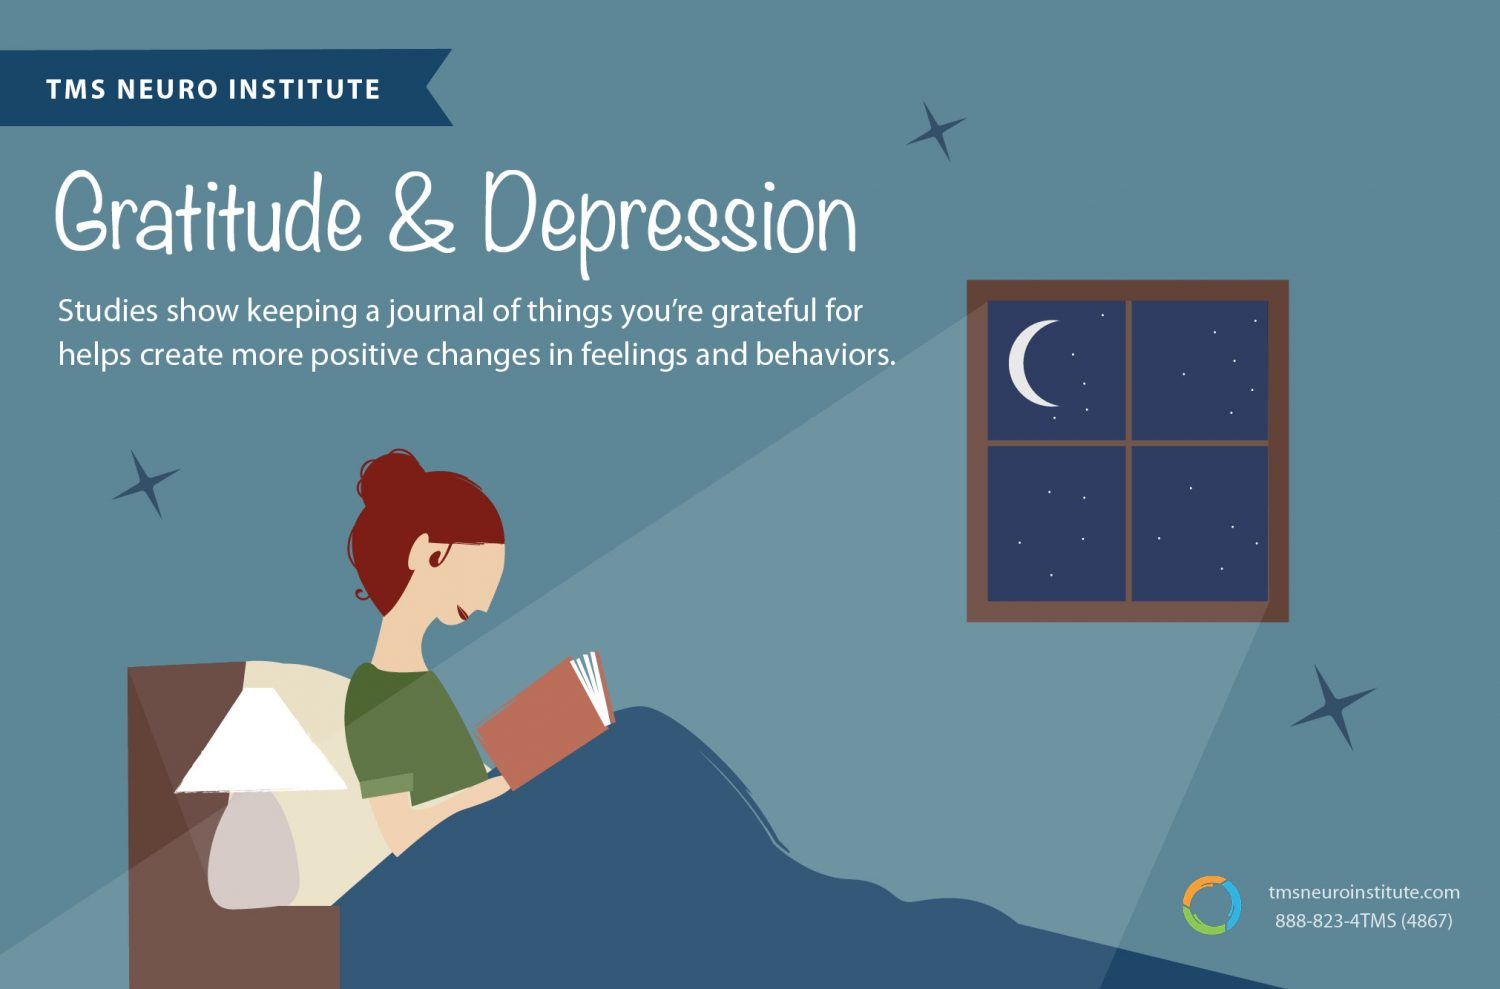 Can Gratitude Help Combat Depression Symptoms?